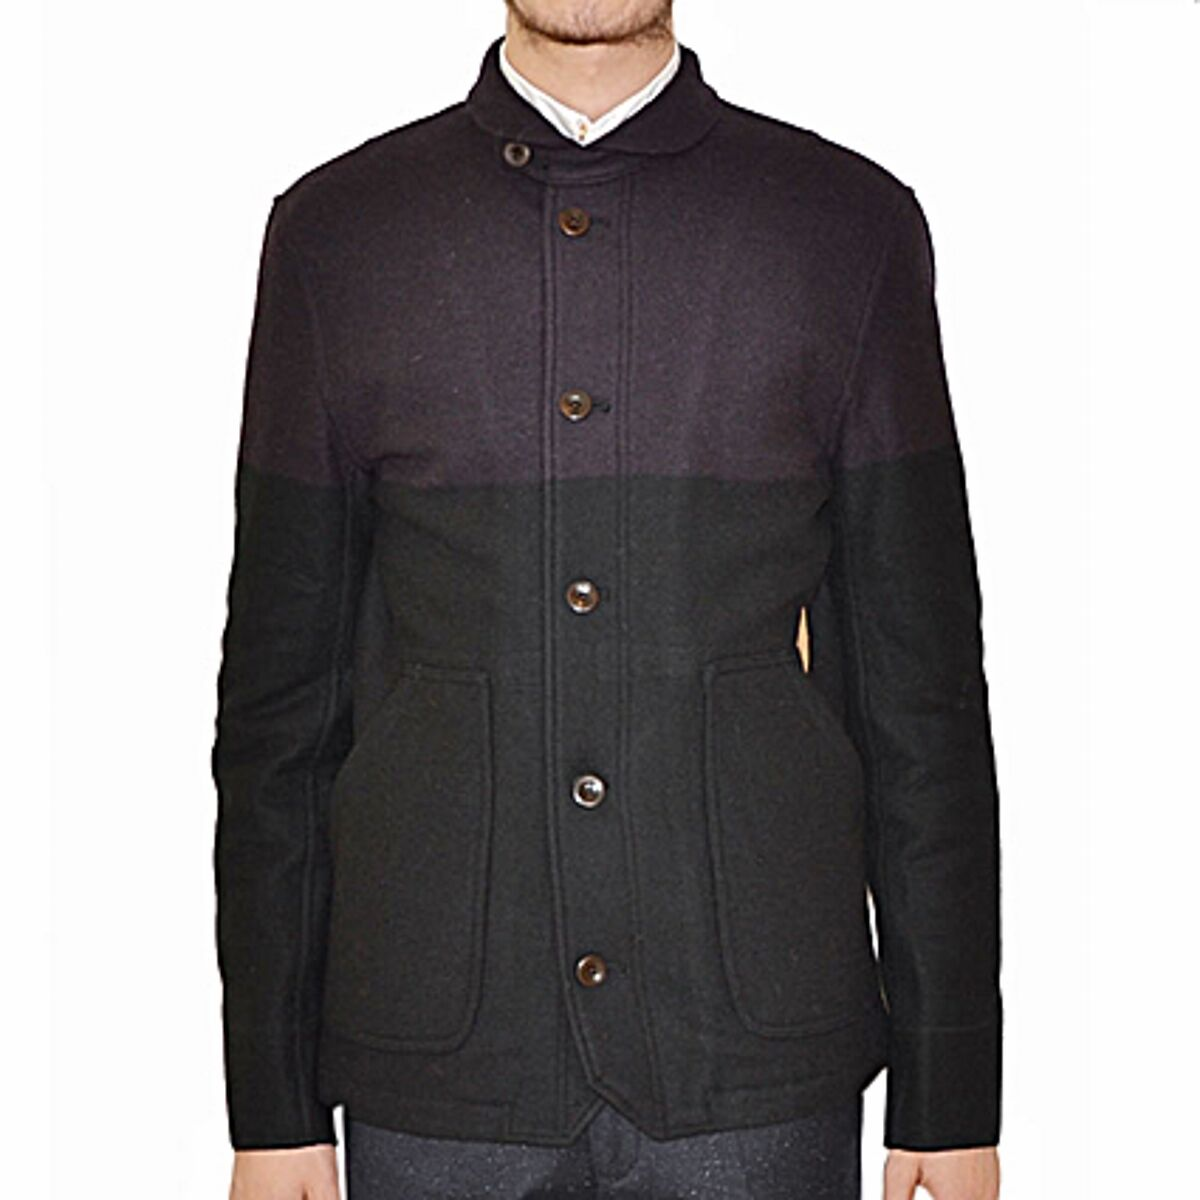 Paul Smith Coat Single-Breasted Bicoloured,  Two-color Single-Breasted Coat  save up to 30-50% off